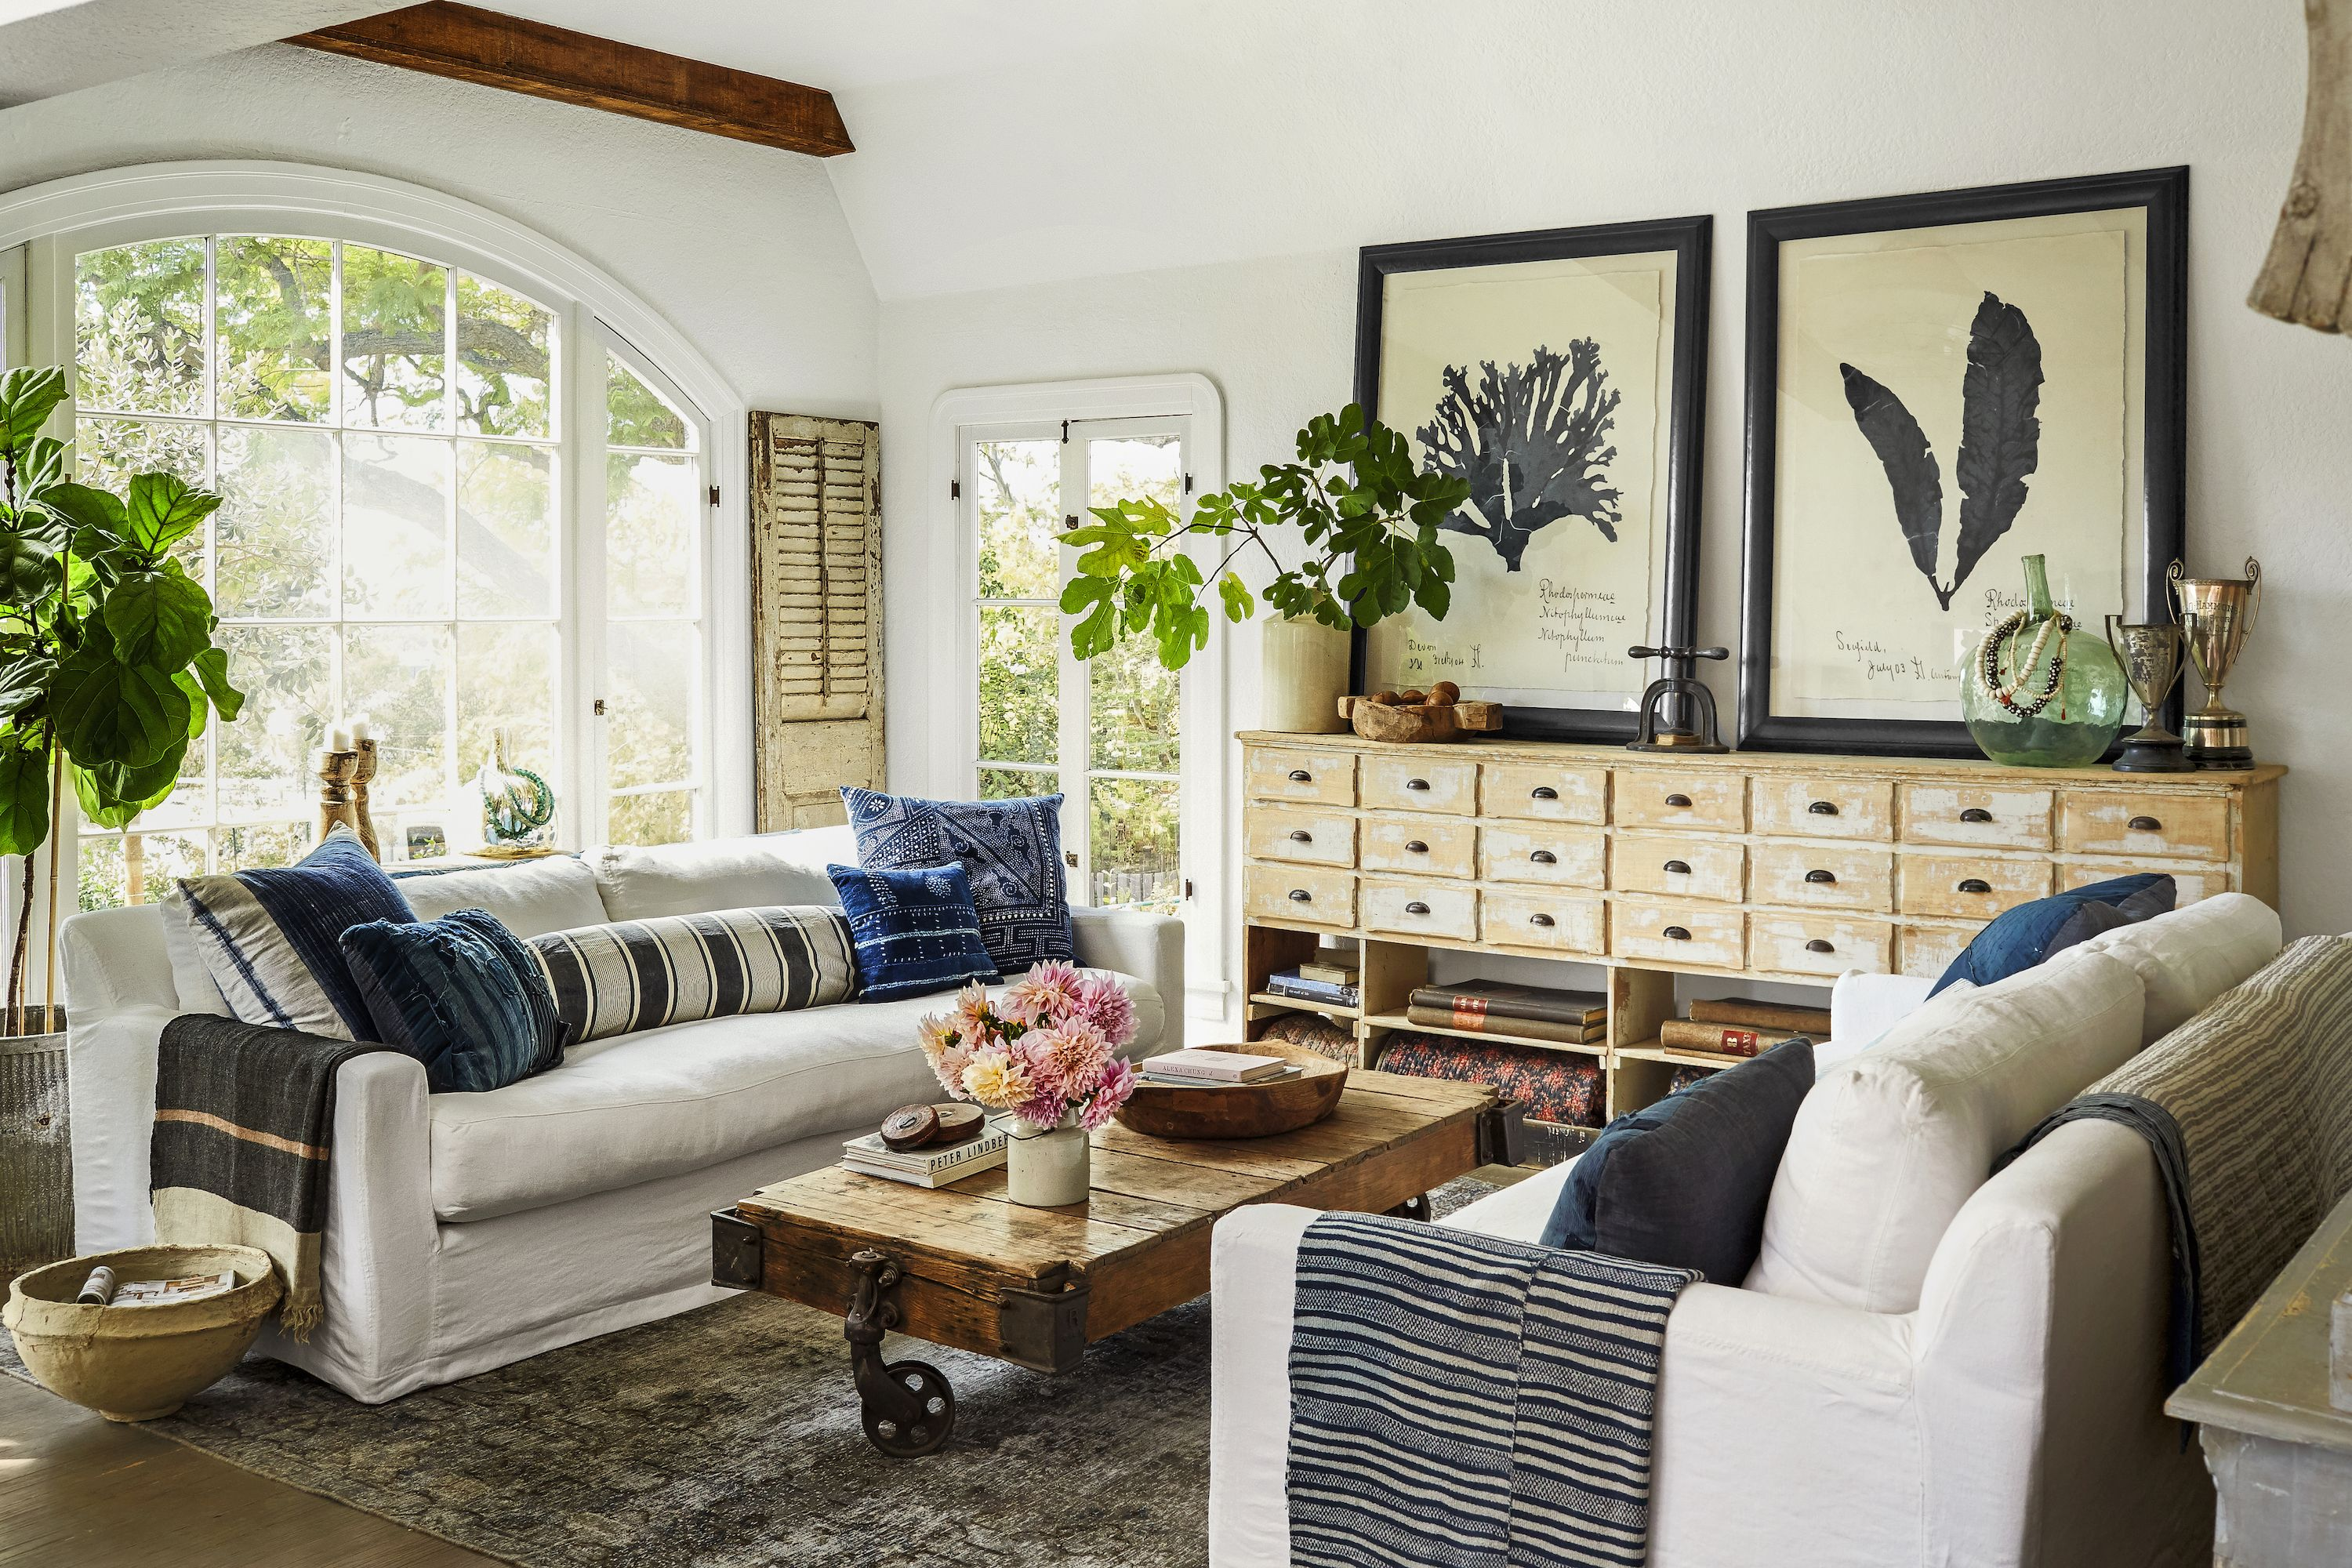 living room design tips contemporary window treatments for 10 secrets a calm and happy home how to create image